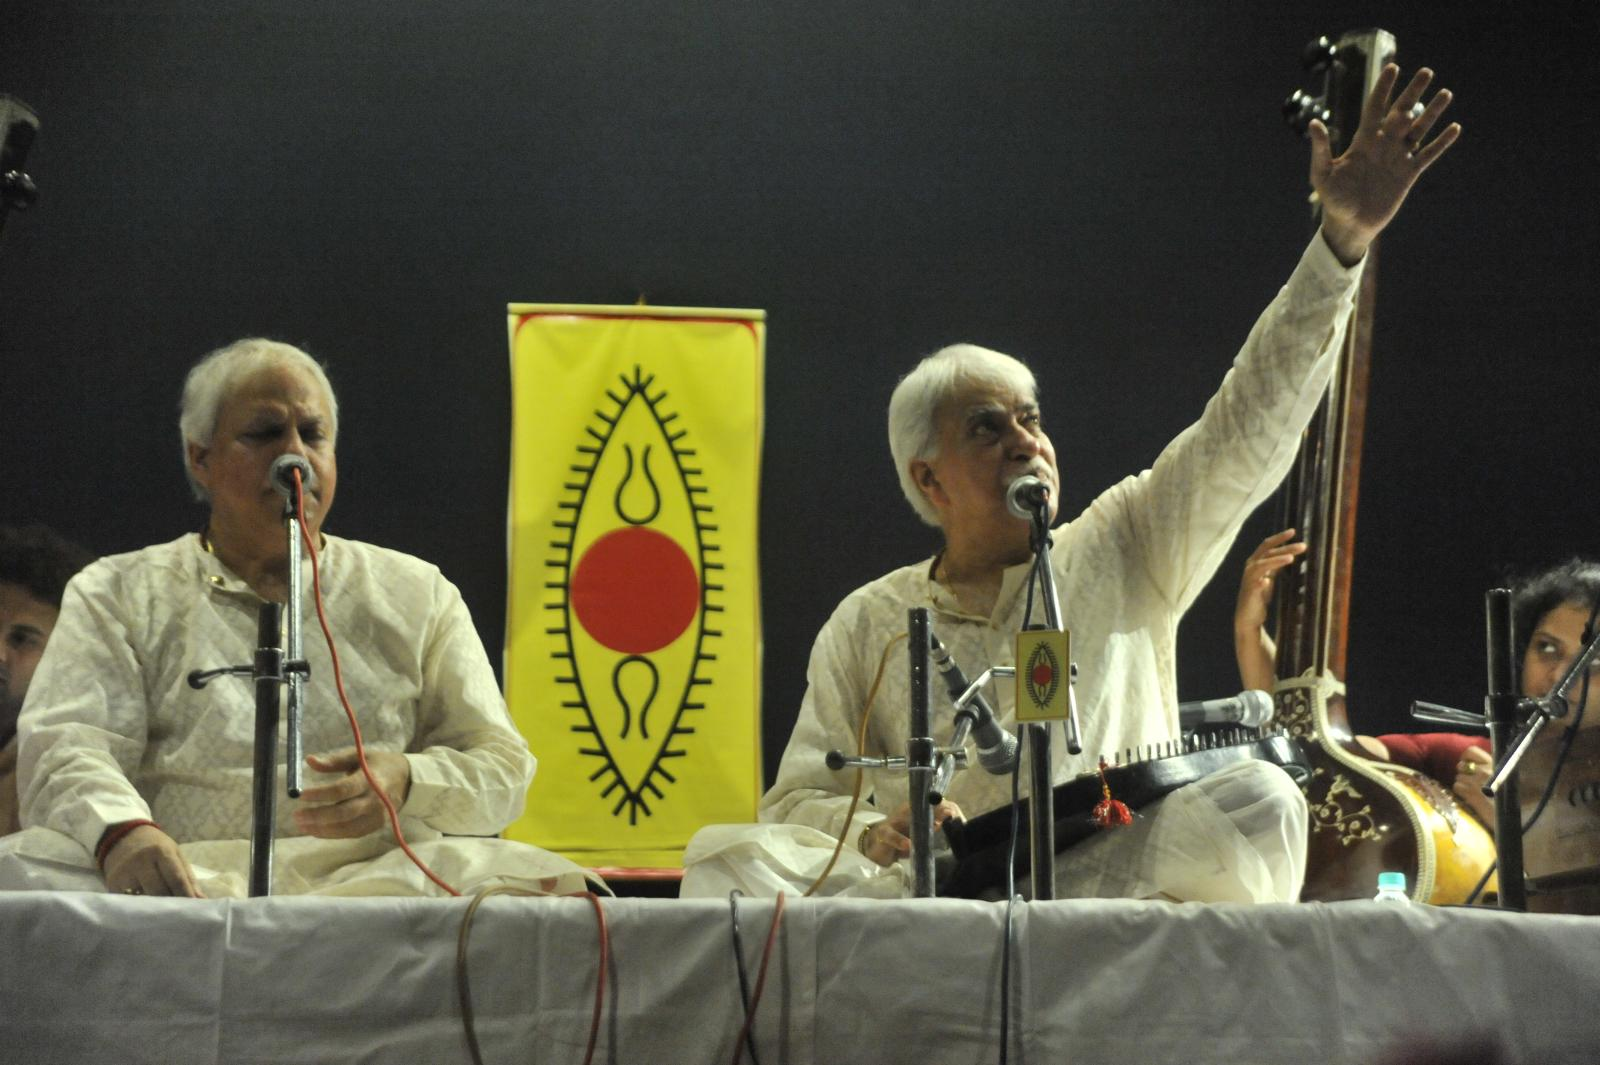 Pts. Rajan & Sajan Mishra (Hindustani Vocal)set the mood for the long overnight concerts